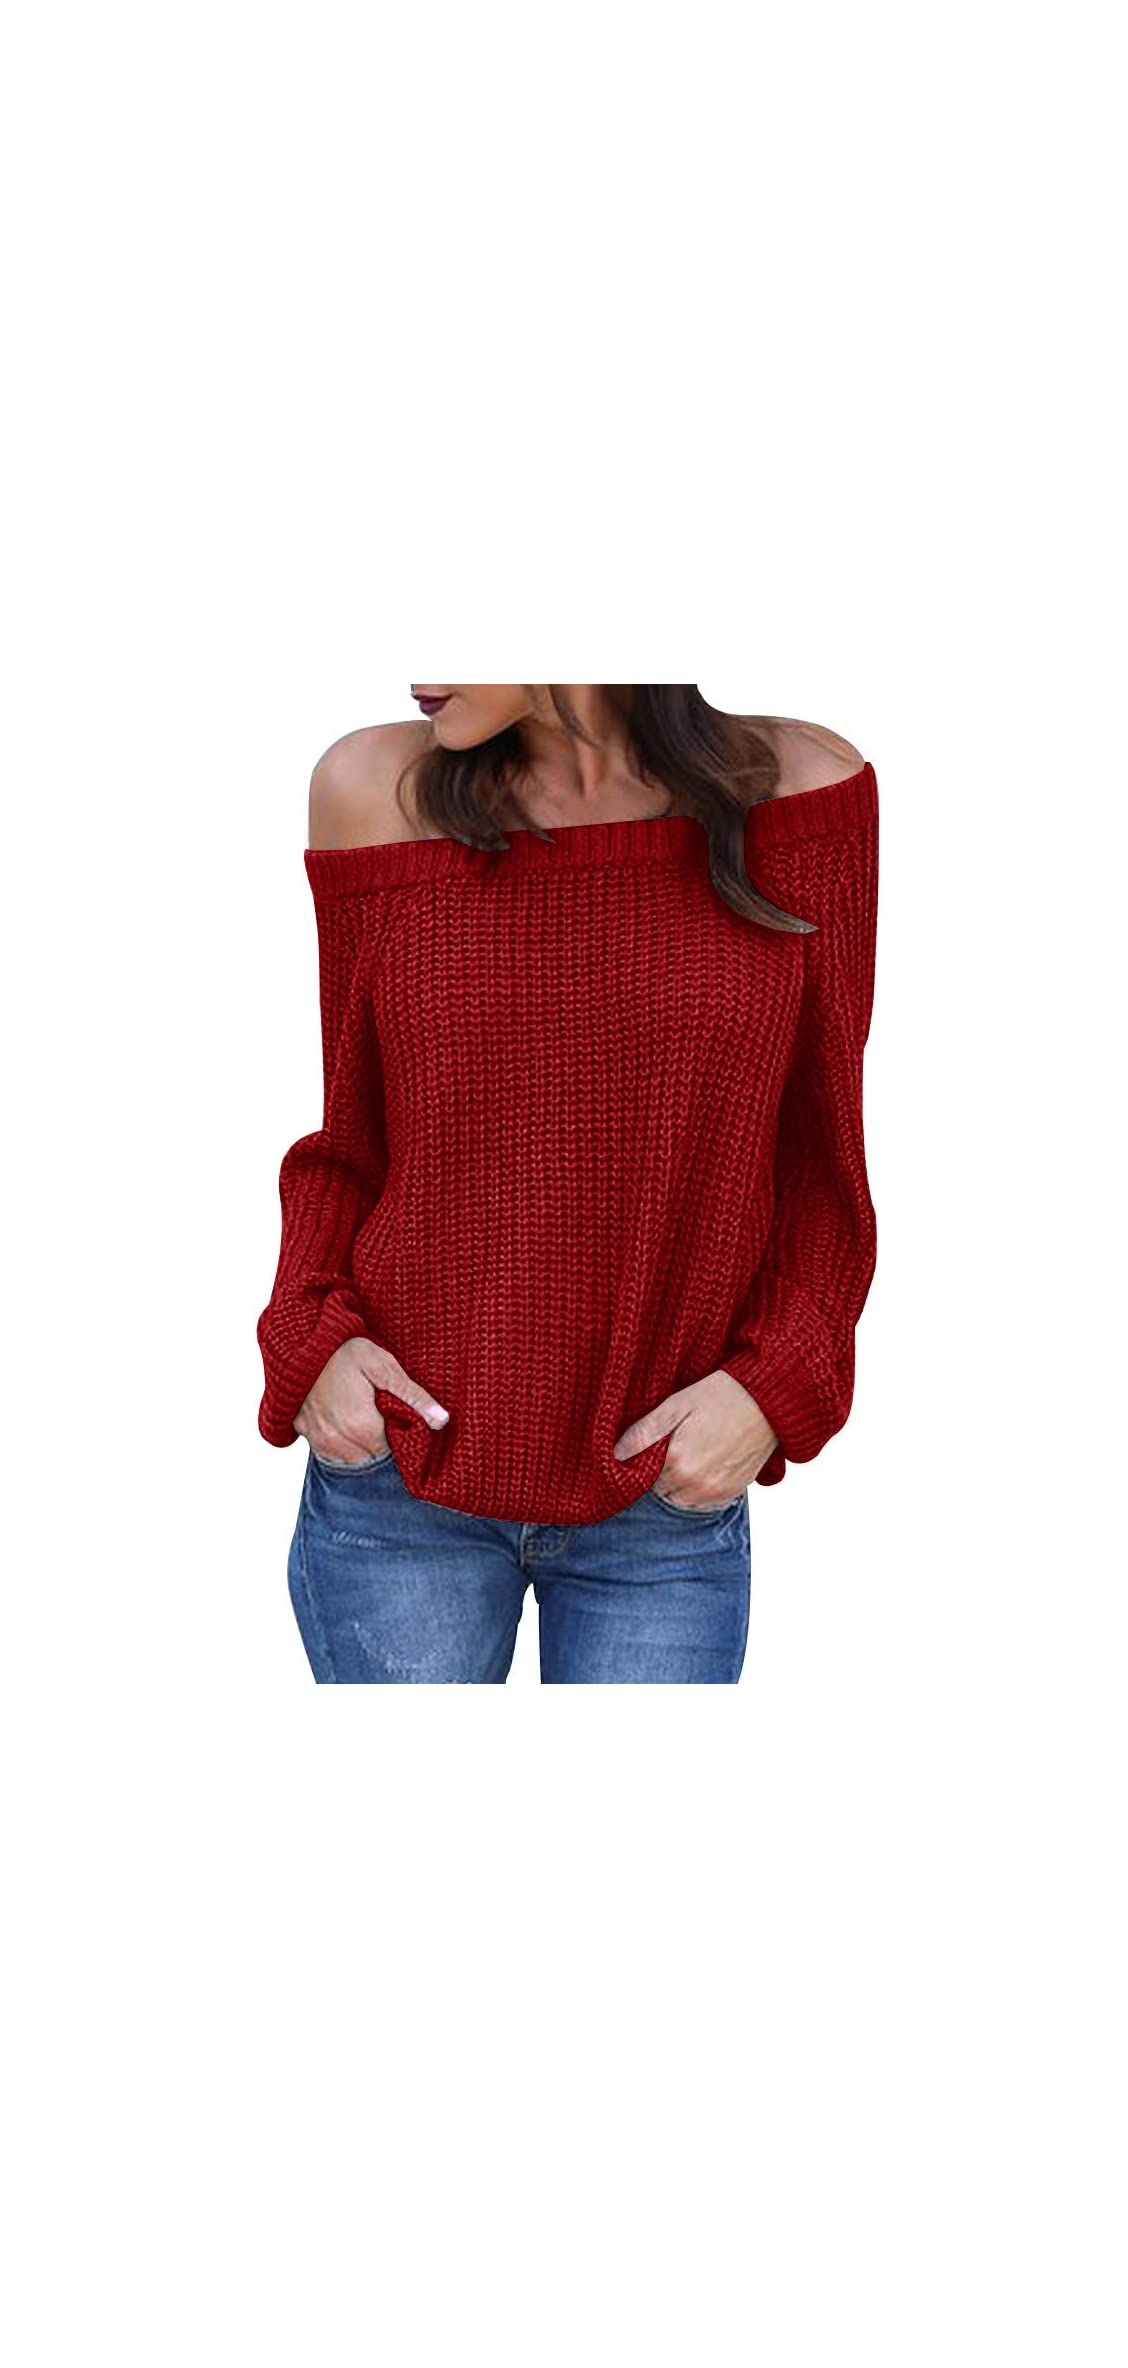 Womens Off The Shoulder Sweaters Fall Oversized Cable